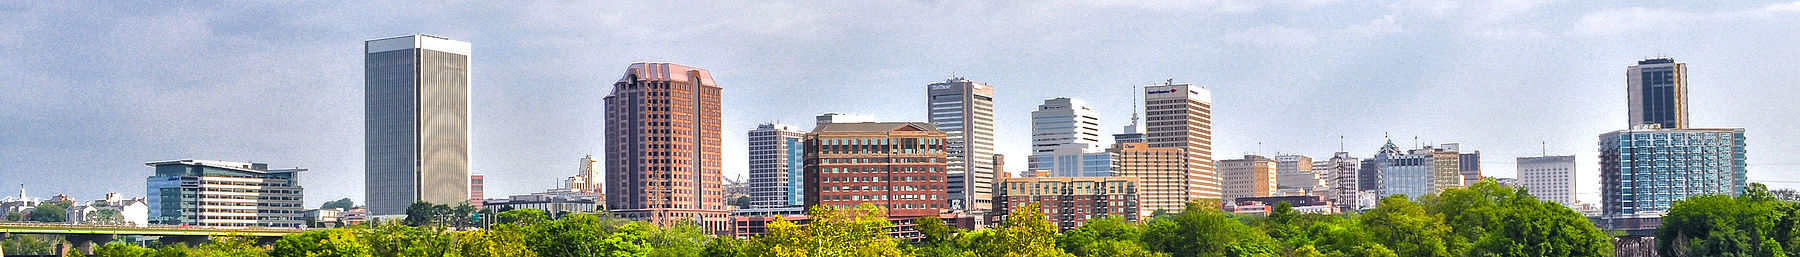 Richmond Virginia Wikivoyage banner.jpg